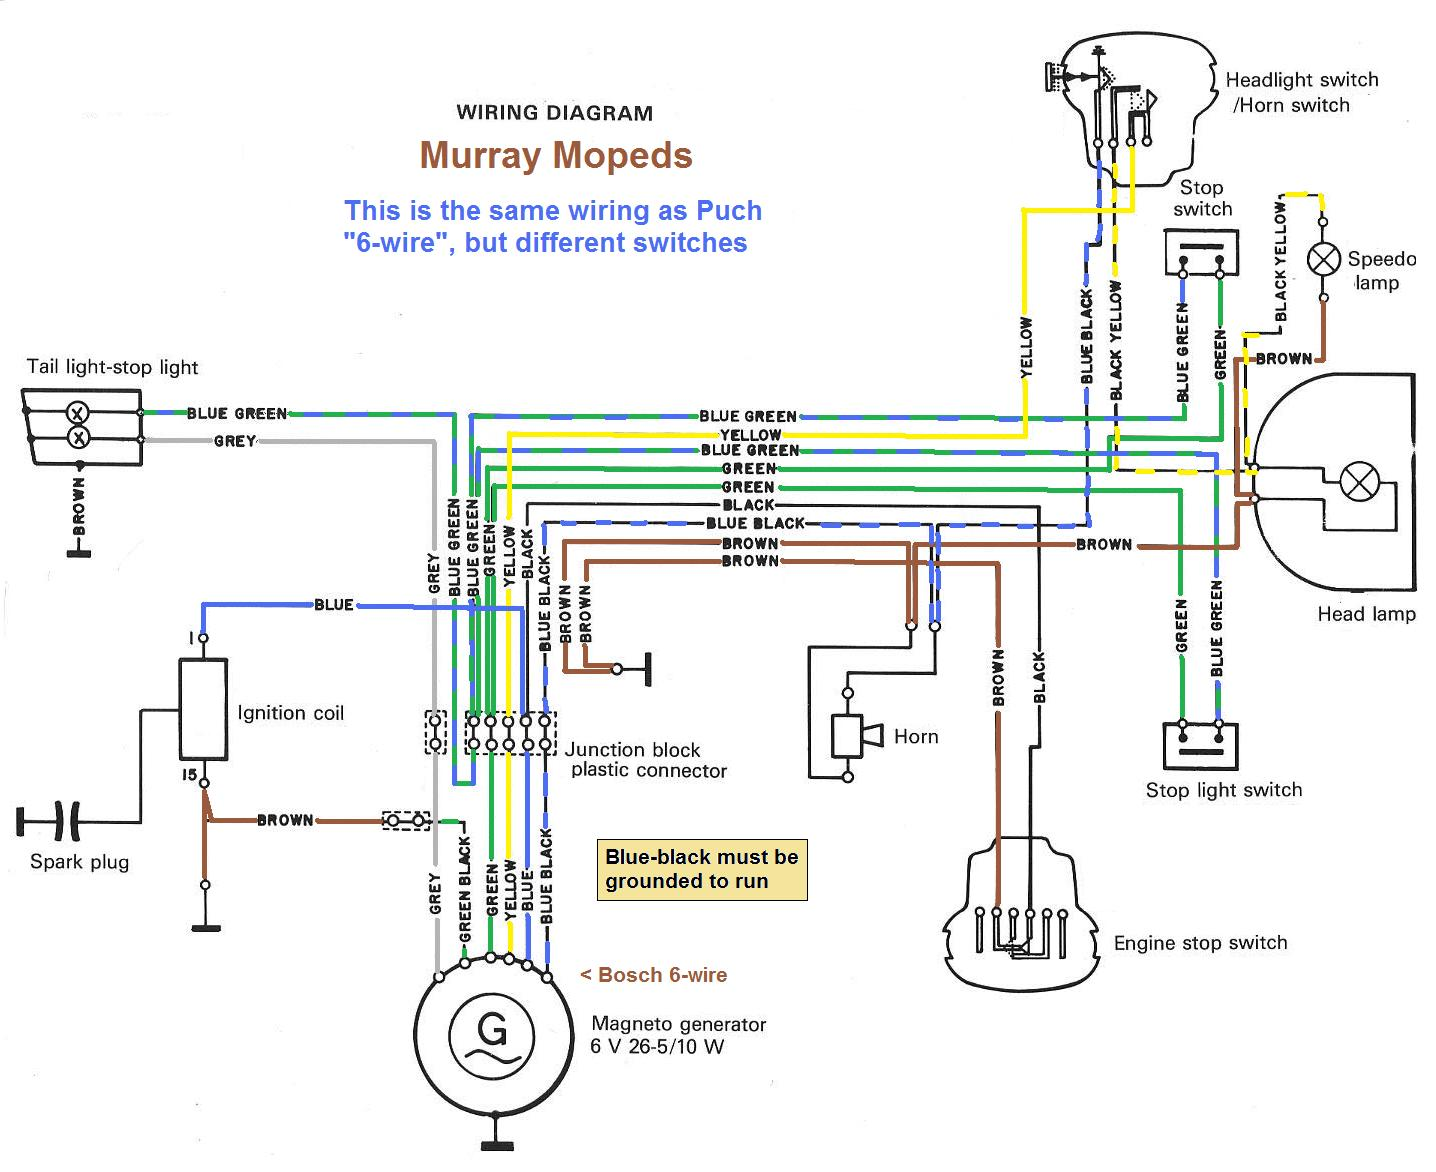 hight resolution of murray 42544x8c ignition wiring diagram images gallery murray wiring schematic murray free engine image for